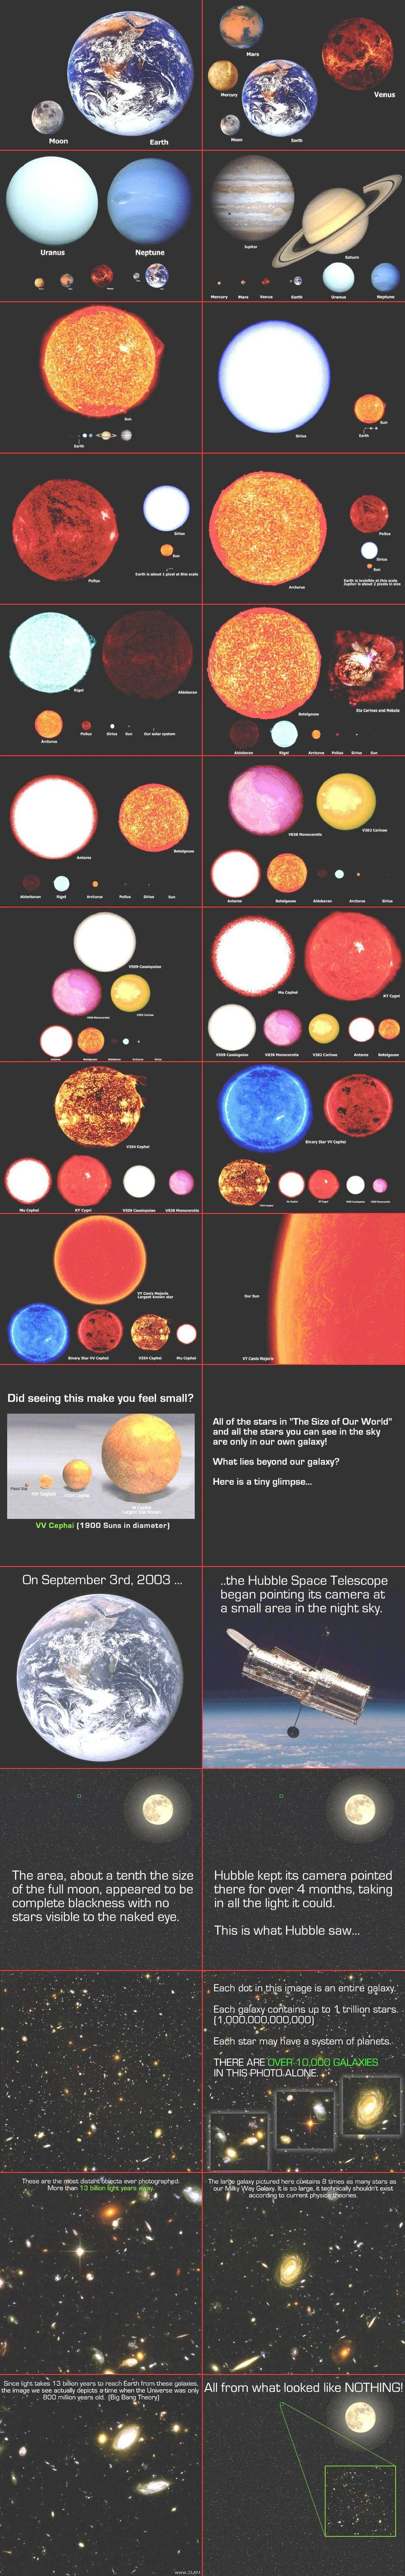 Visualizing The Size And Scale Of Our World Random Astronomy Planet Inside Earth Diagram Page 3 Pics About Space Understanding In Comparison To Rest Solar System An Amazing Illustration Visualize